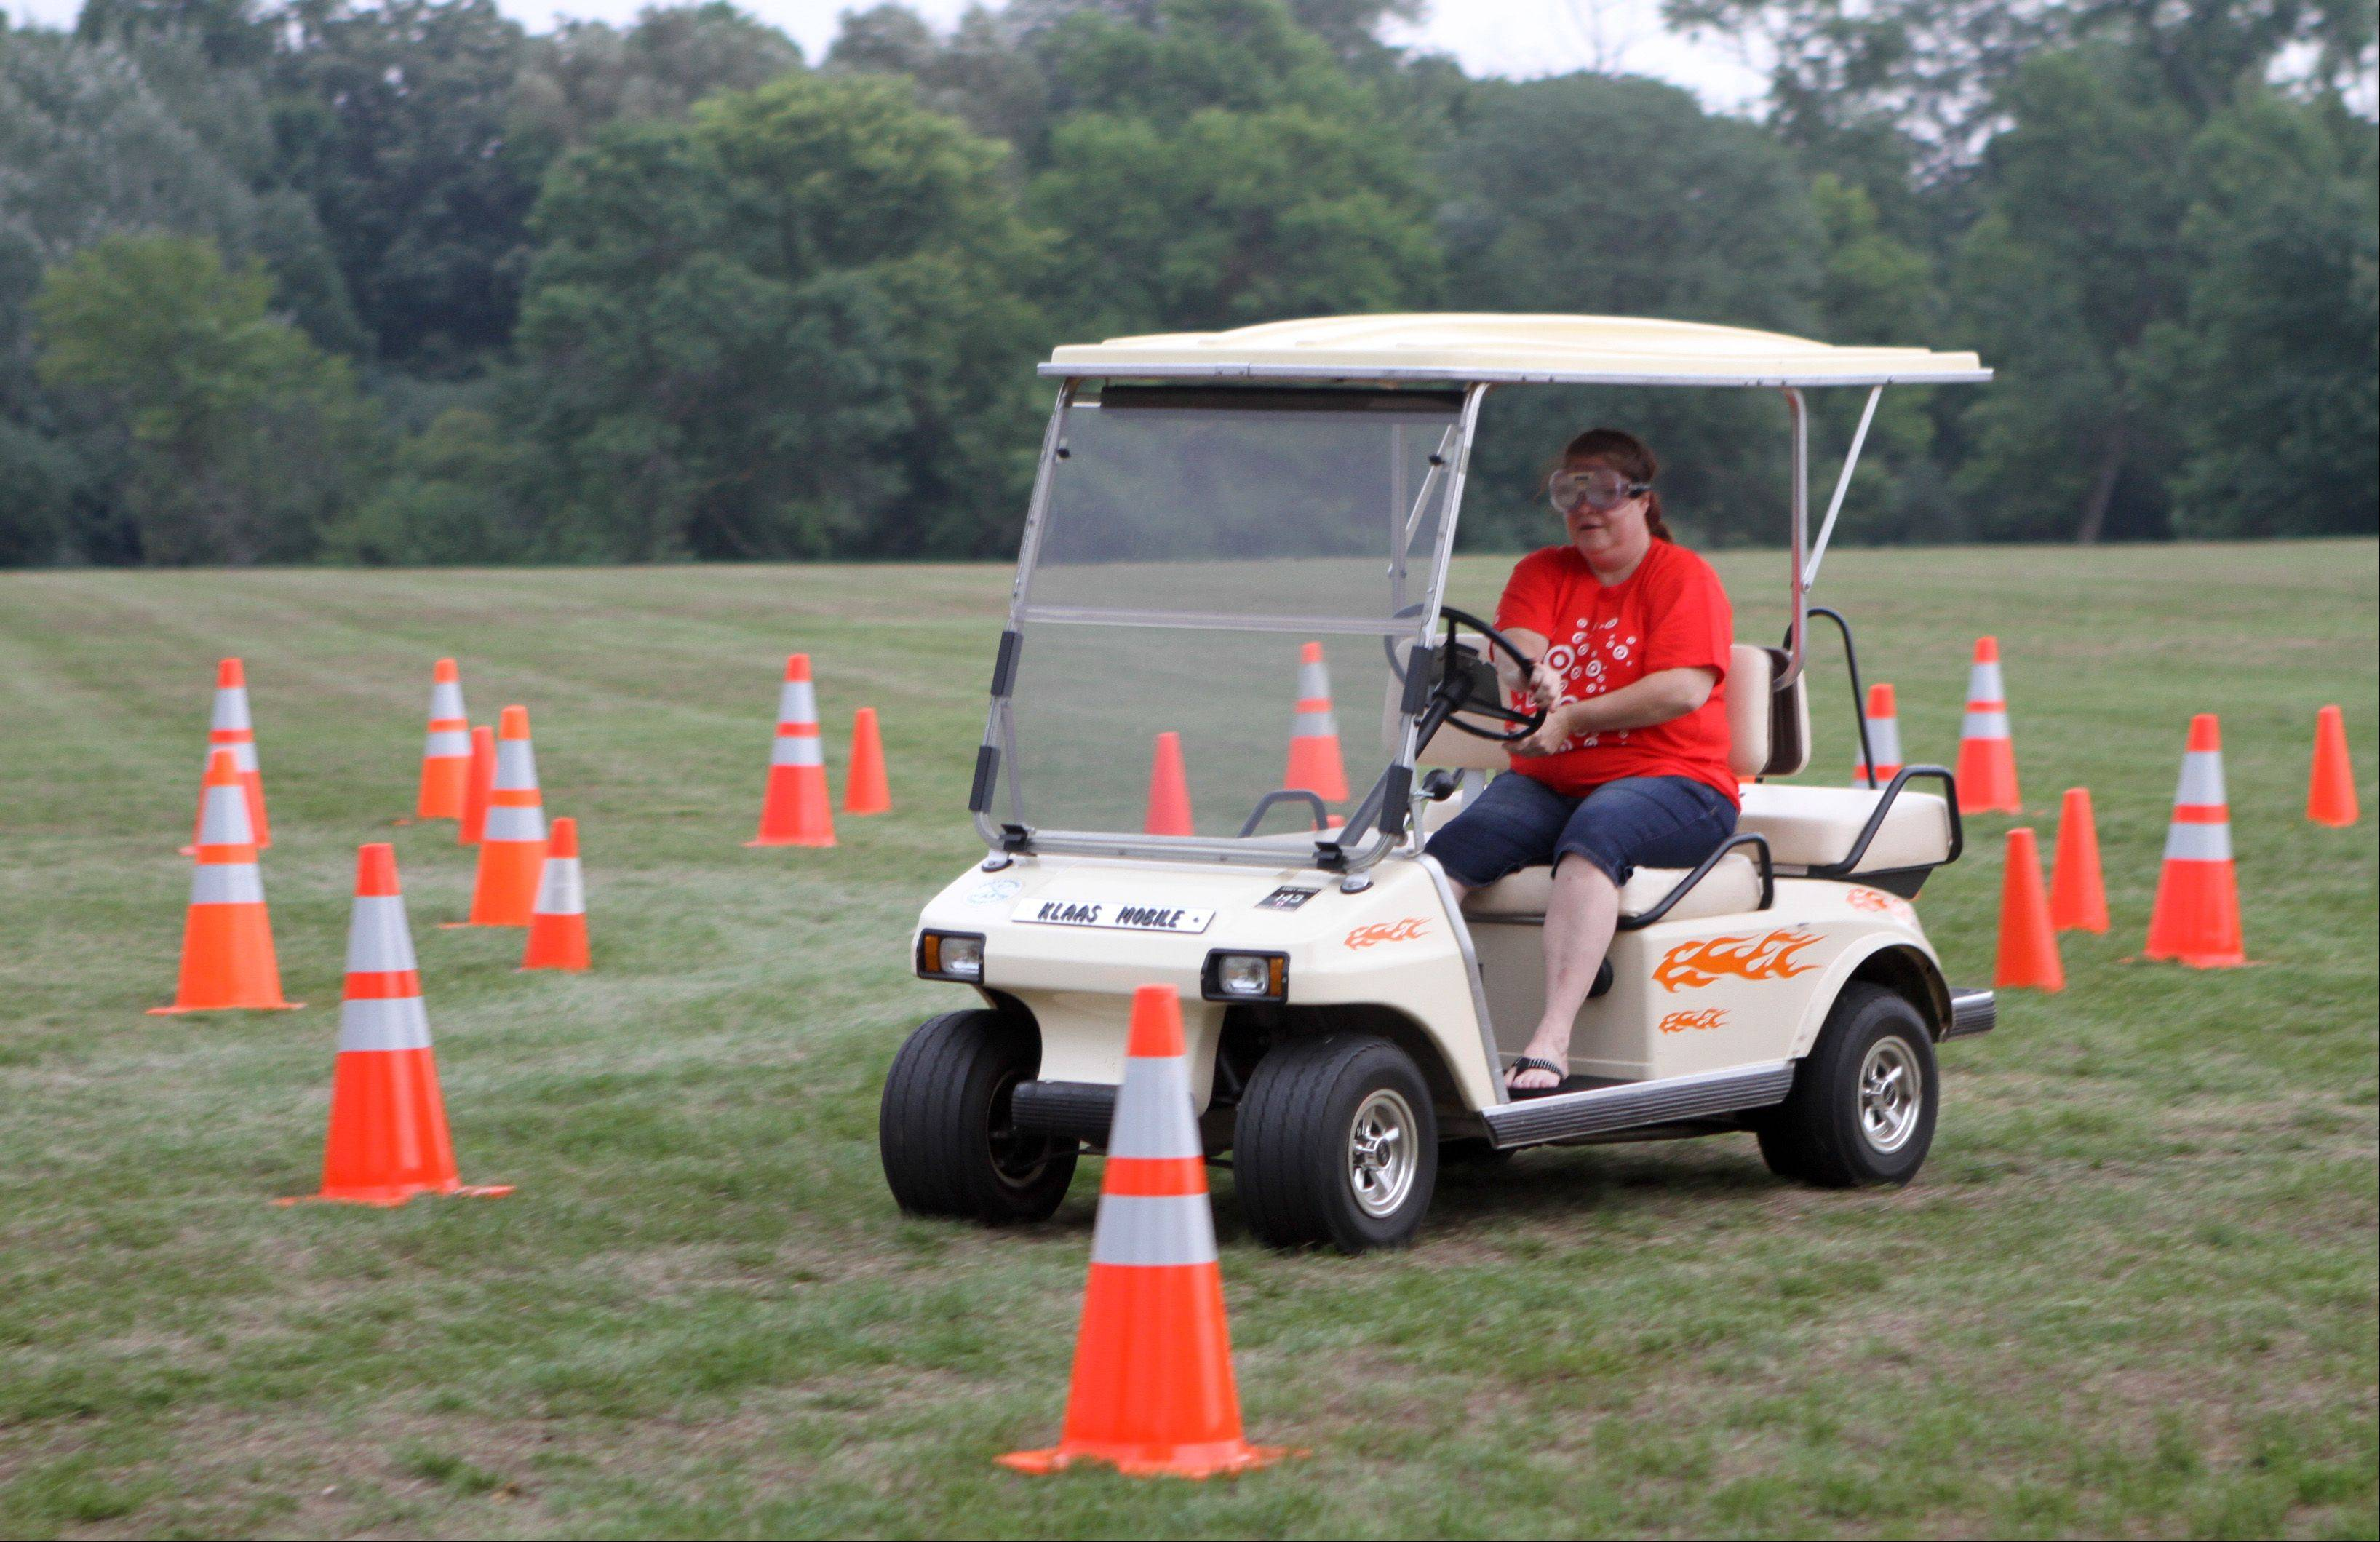 Stephanie Kronberger, from Barrington, wears goggles that simulate drunken driving and drives through a course marked with cones during Barrington's National Night Out at Citizen Park.